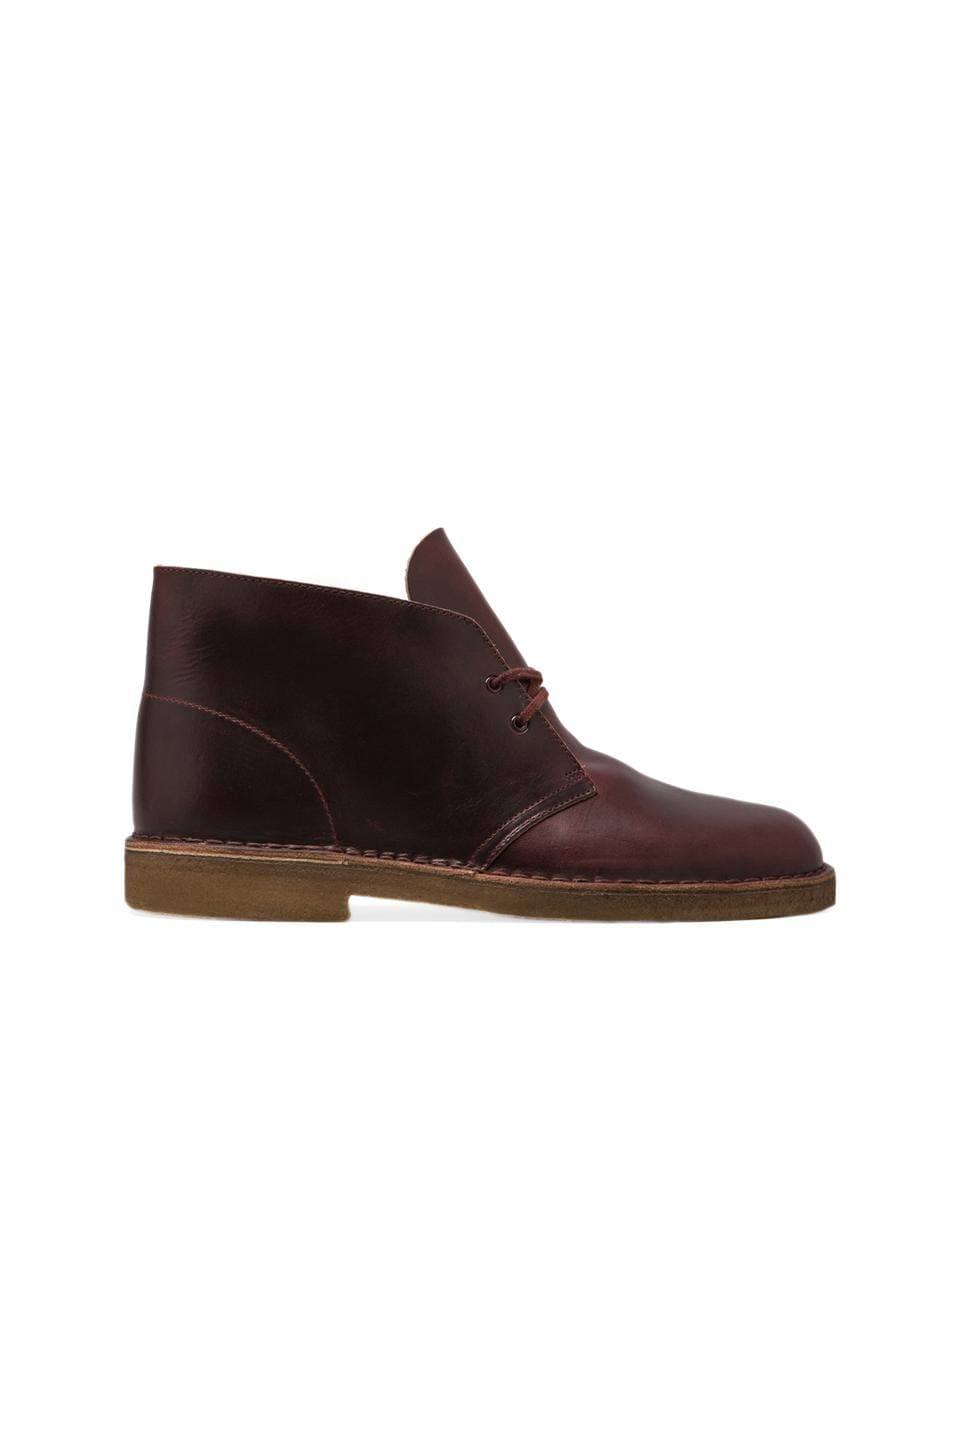 Clarks Originals Desert Boot in Burgundy Horween Leather